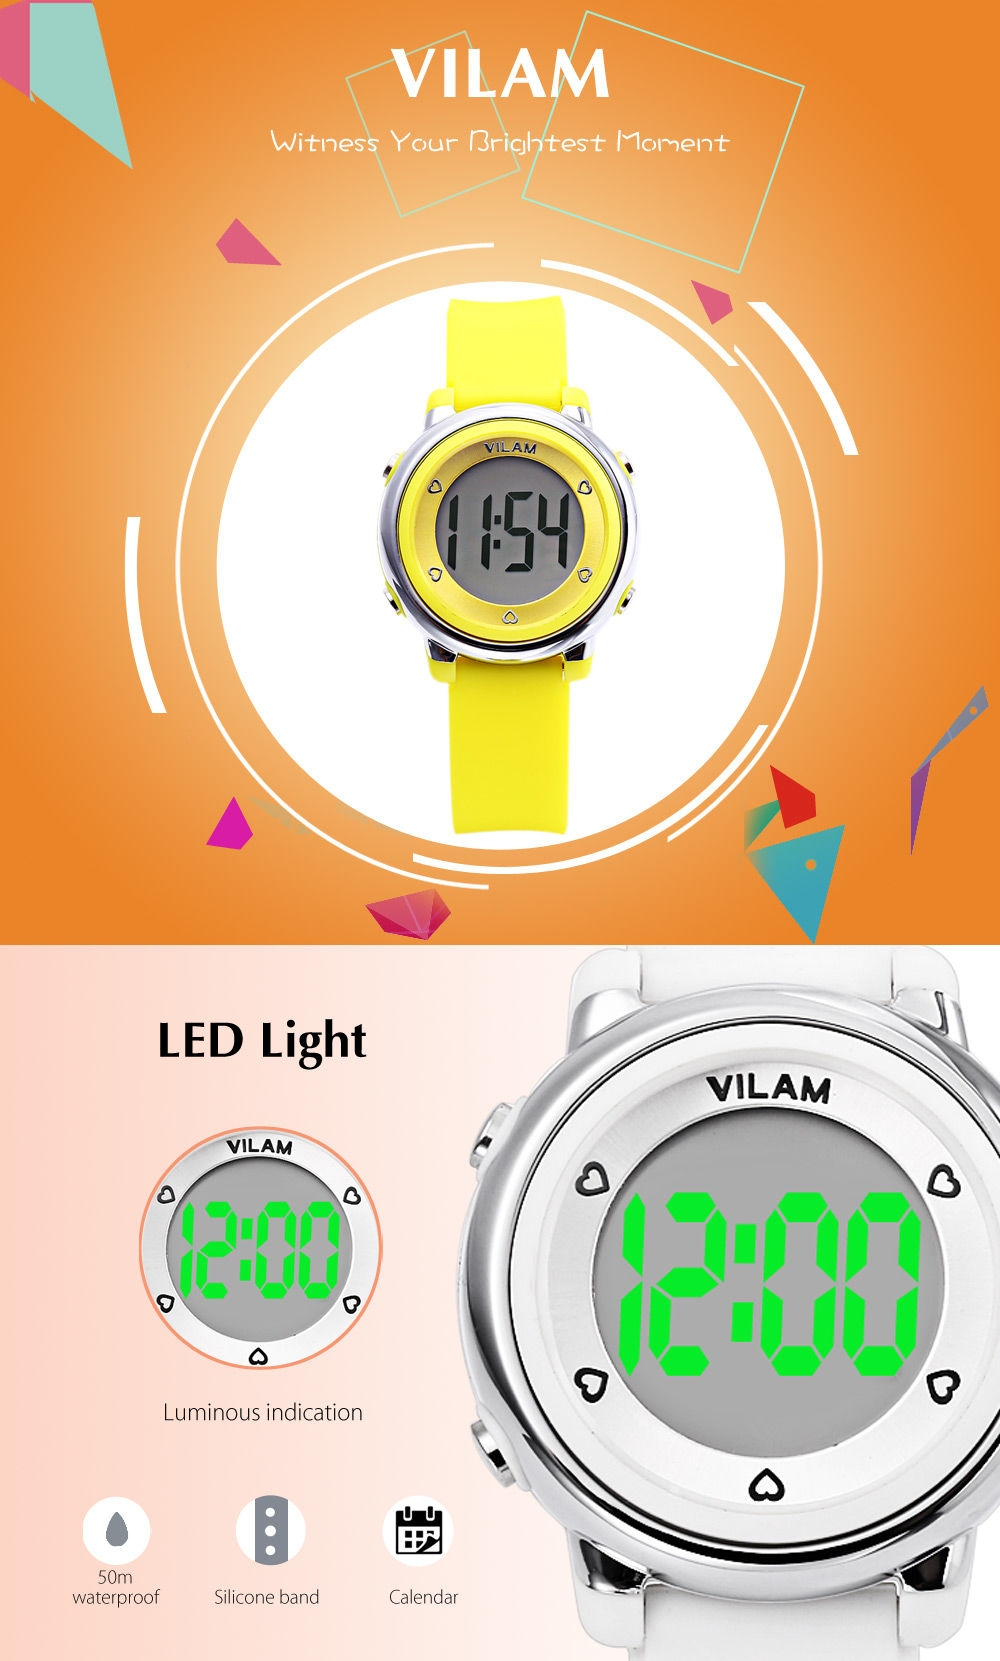 VILAM 06035 Kids Digital Sports Watch Calendar LED Light 50m Water Resistance Wristwatch